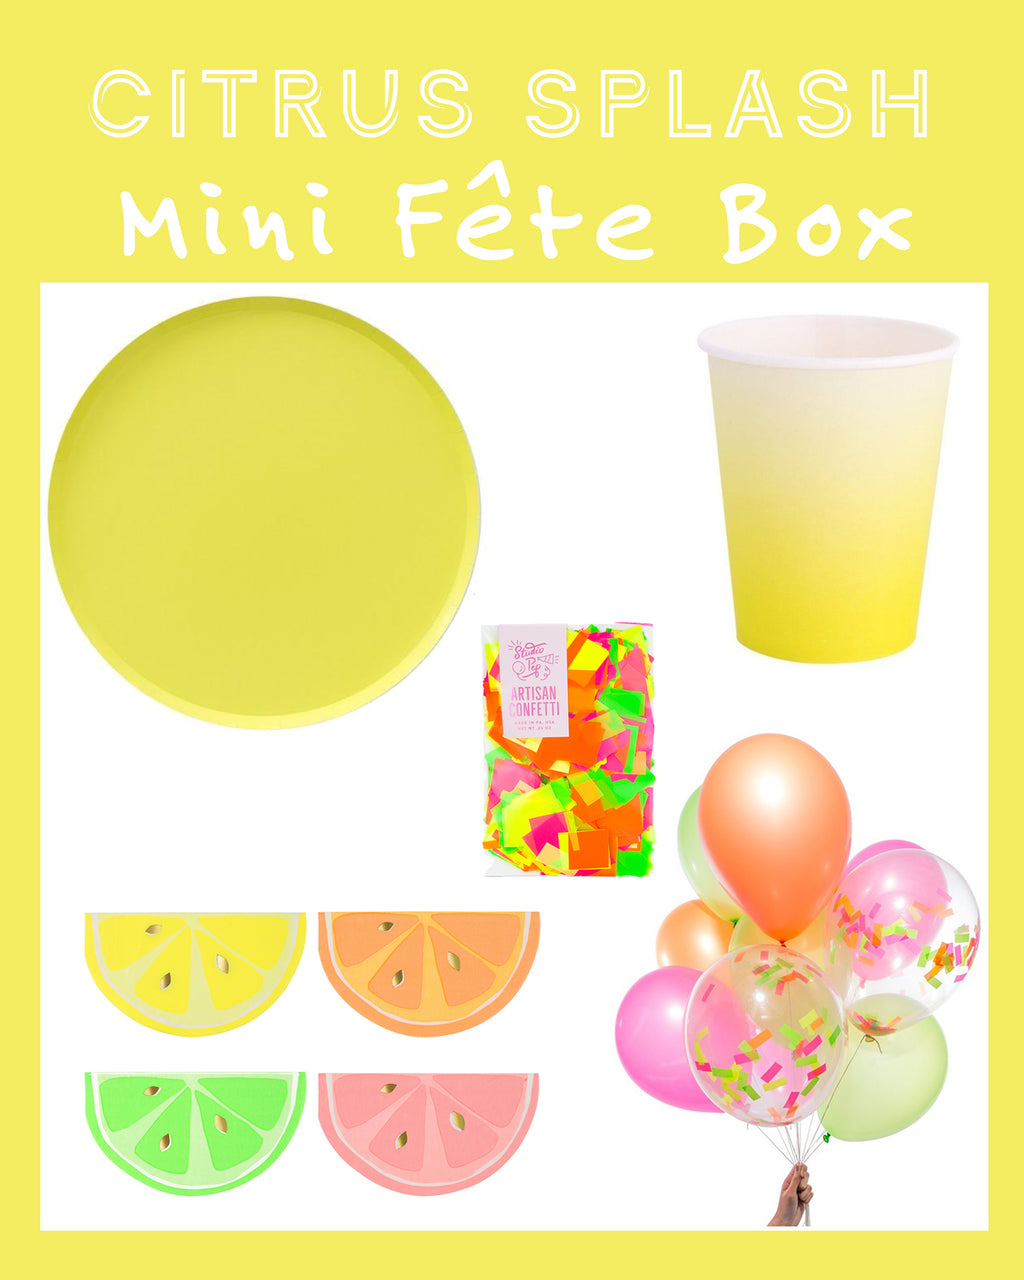 CITRUS SPLASH MINI FÊTE BOX